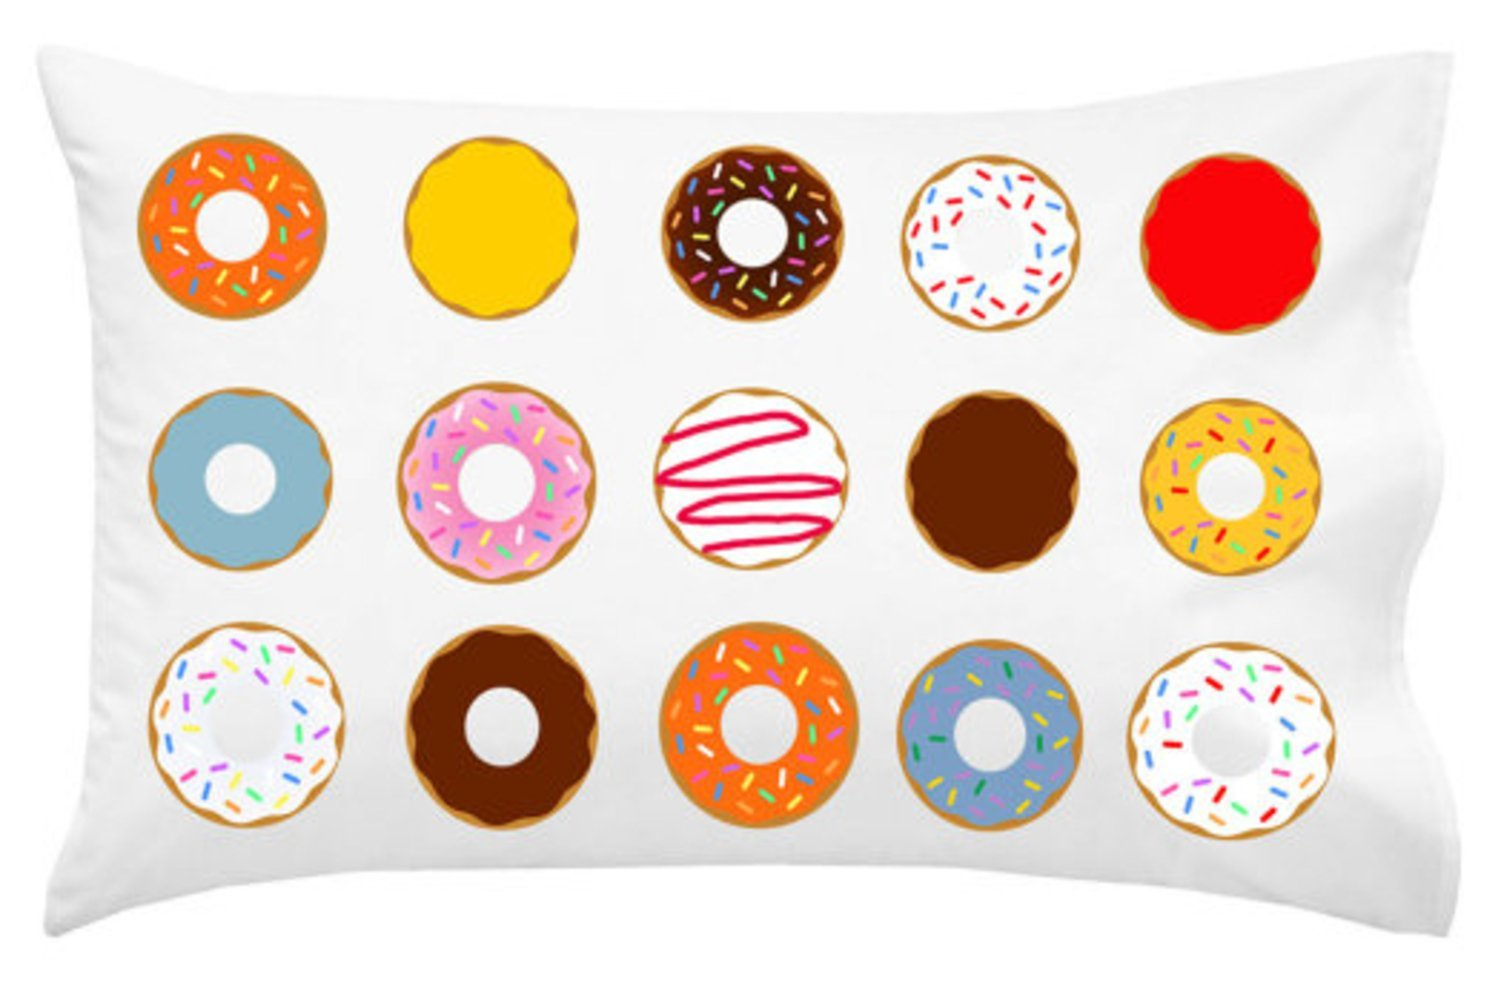 Oh, Susannah Cute Donut Pillowcase - Fun Sleepable Colorful Donuts (One 20x30 inch Standard/Queen Size Pillow Case) Kids Room Decor by Oh, Susannah